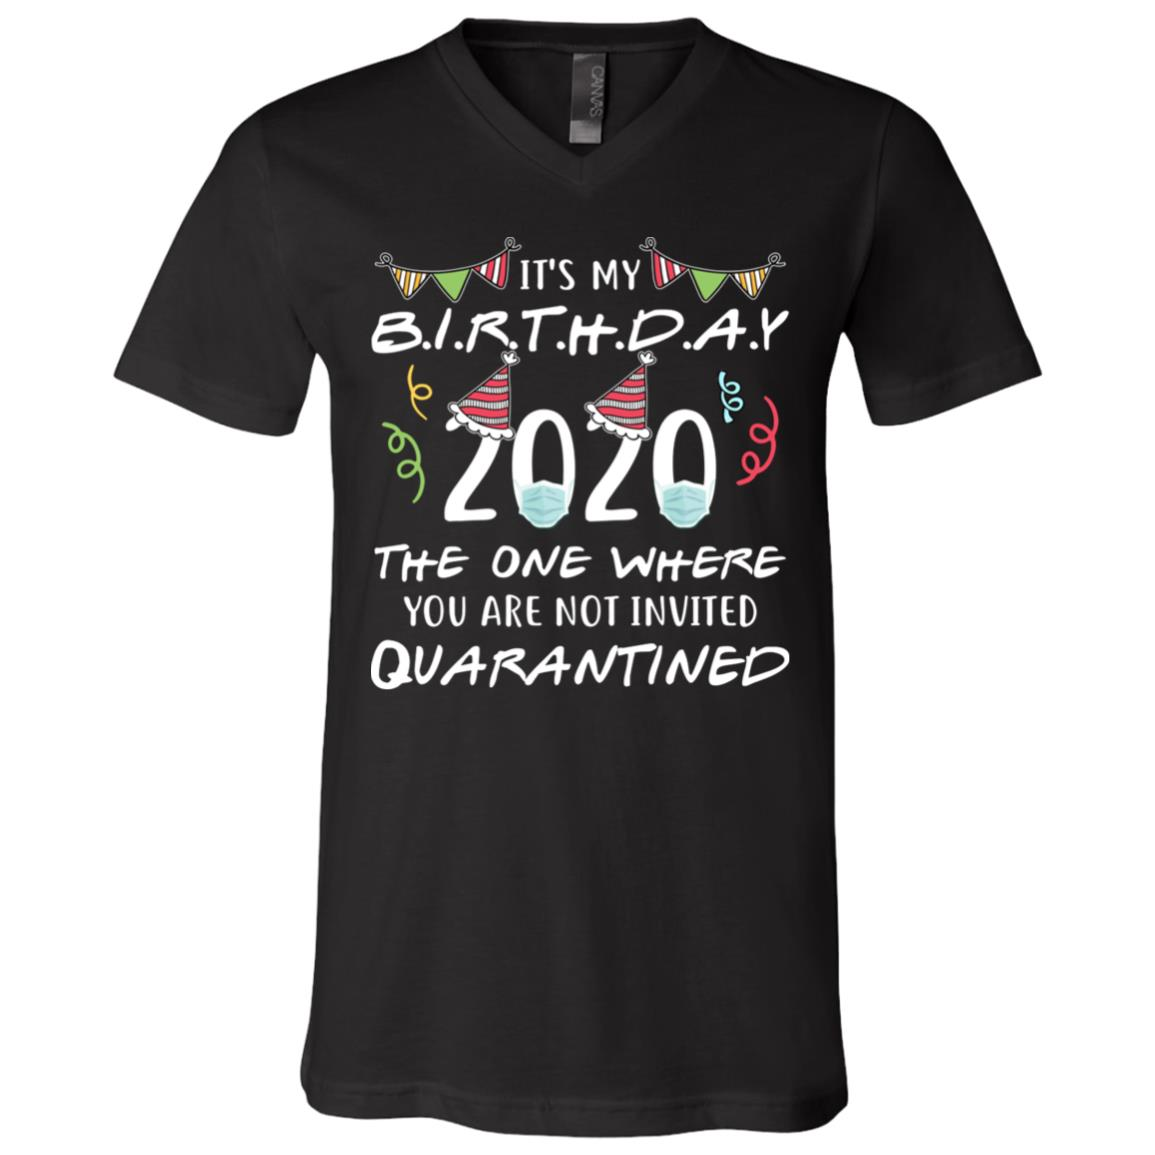 My 26th birthday The one where I was quarantined Quarantine Birthday Shirt Quarantine Birthday Gift Custom Birthday Quarantined Shirt